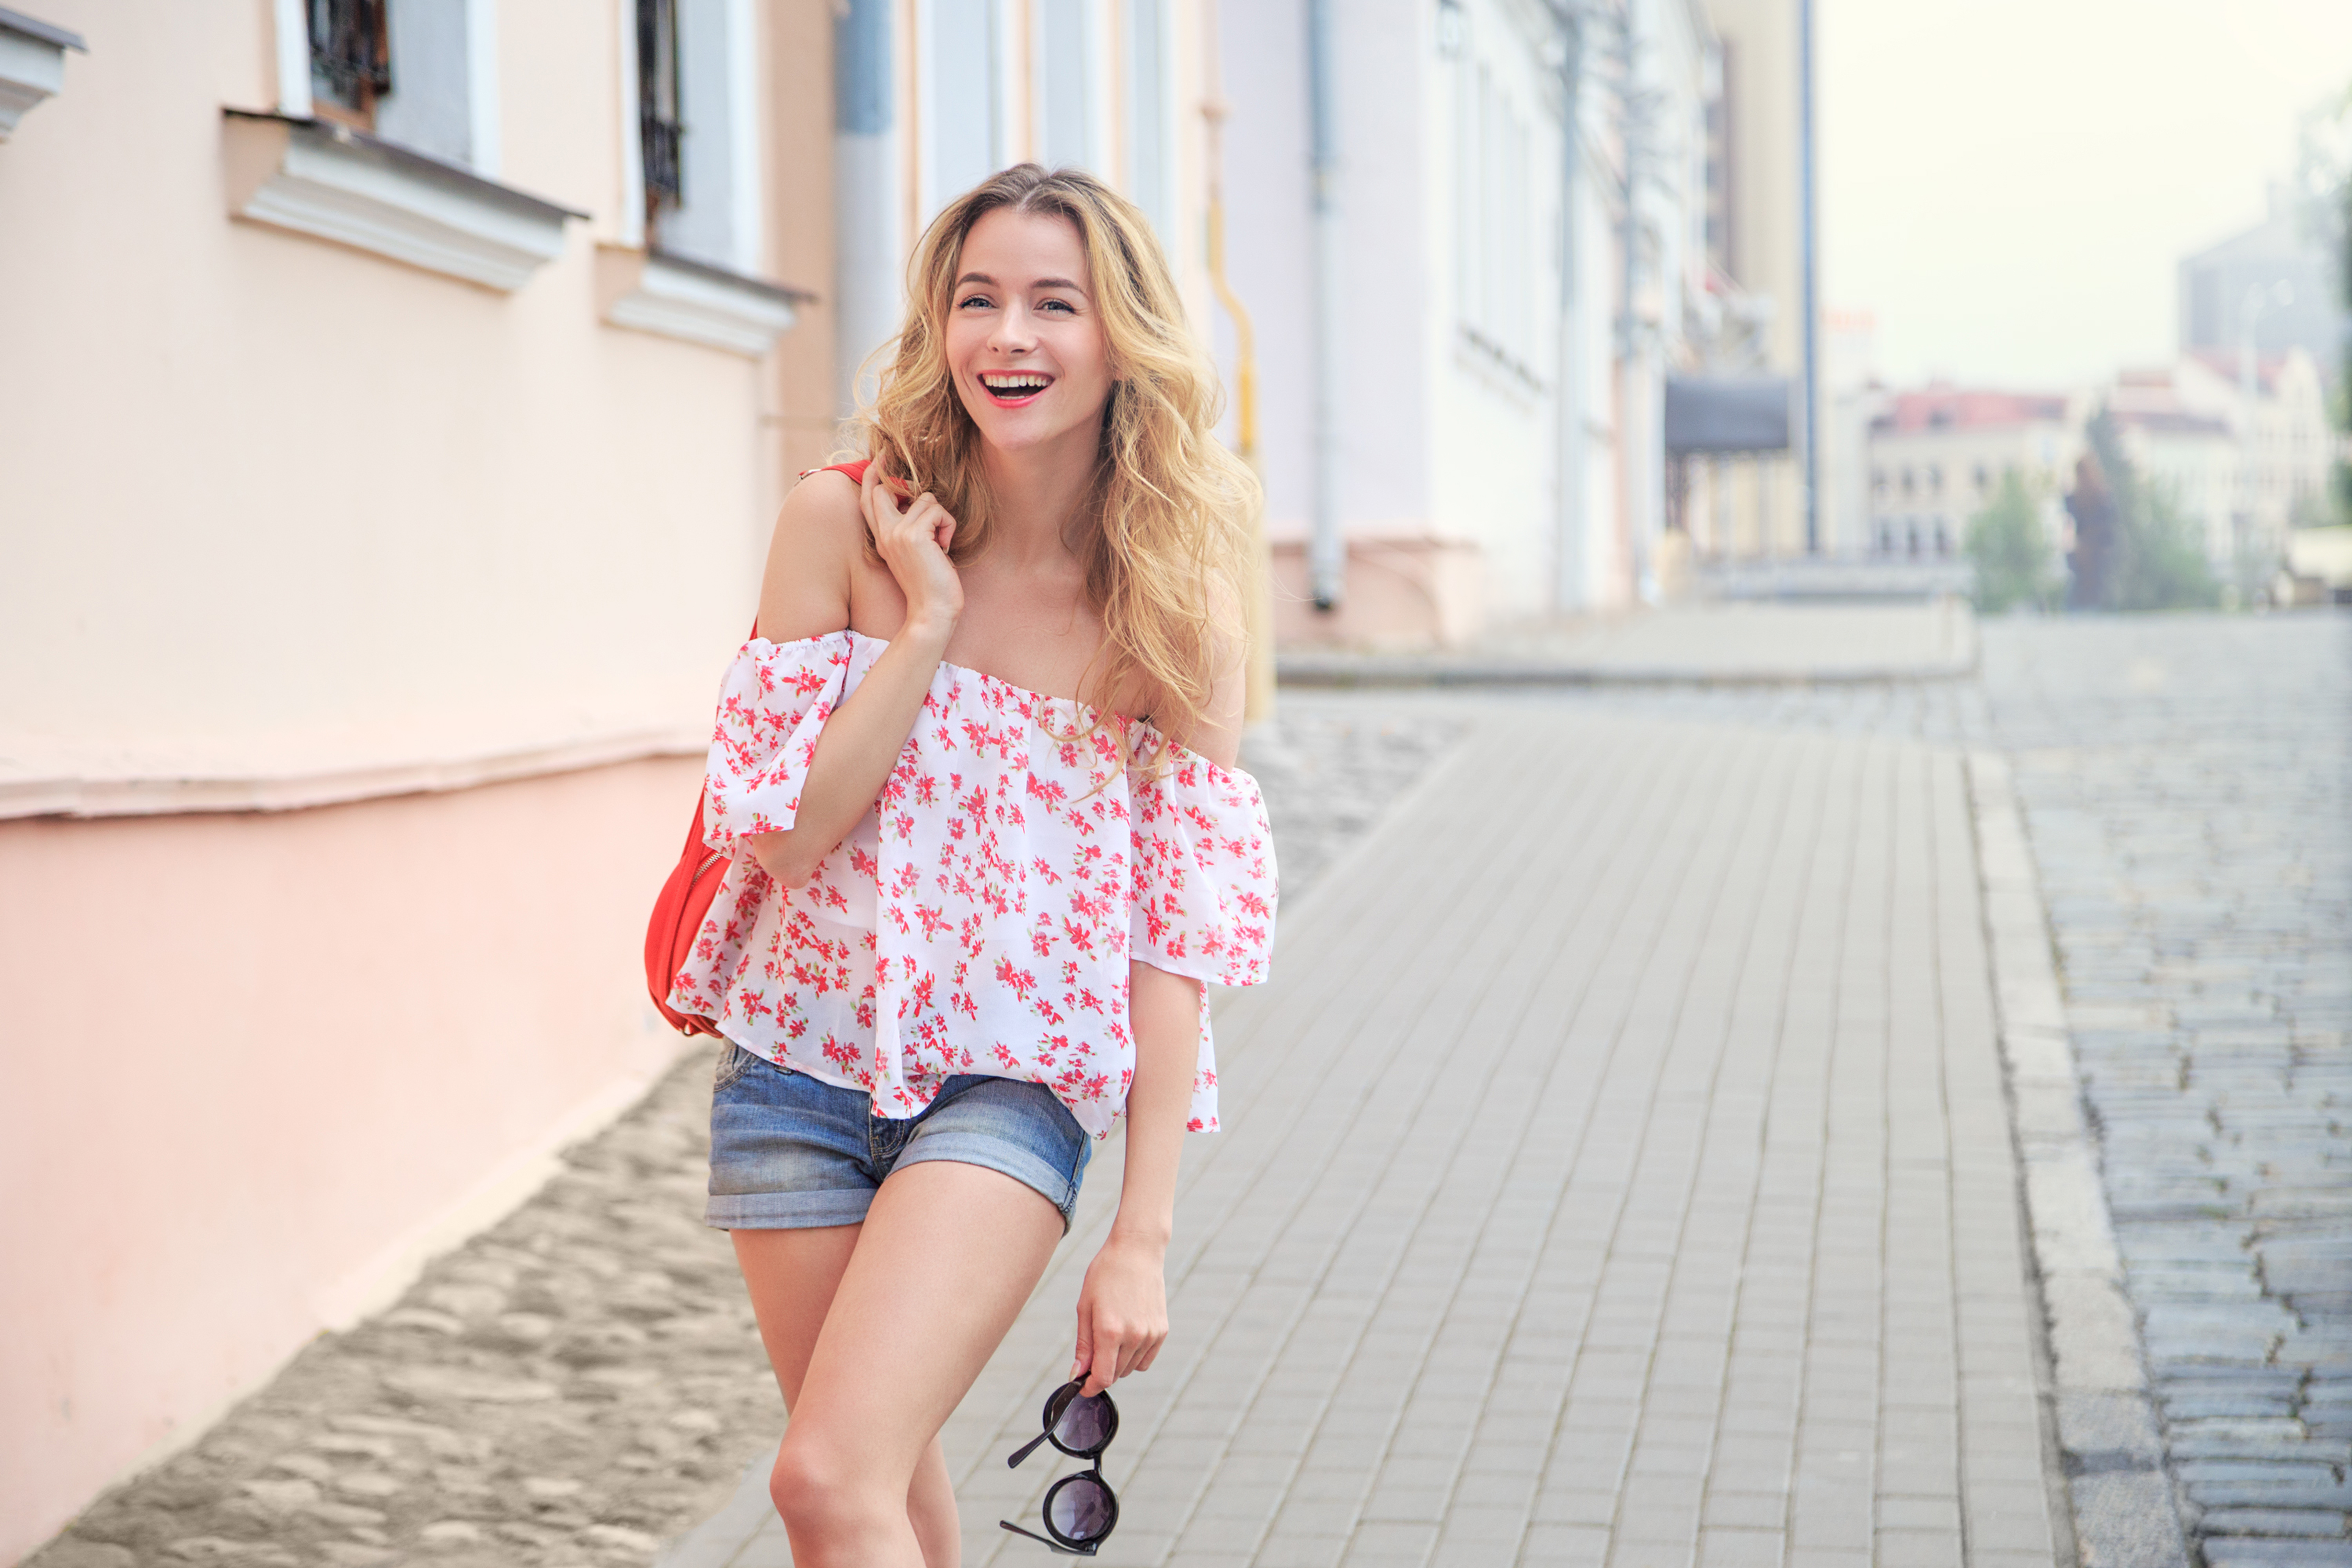 Laughing Fashion Woman in City Street in Europe